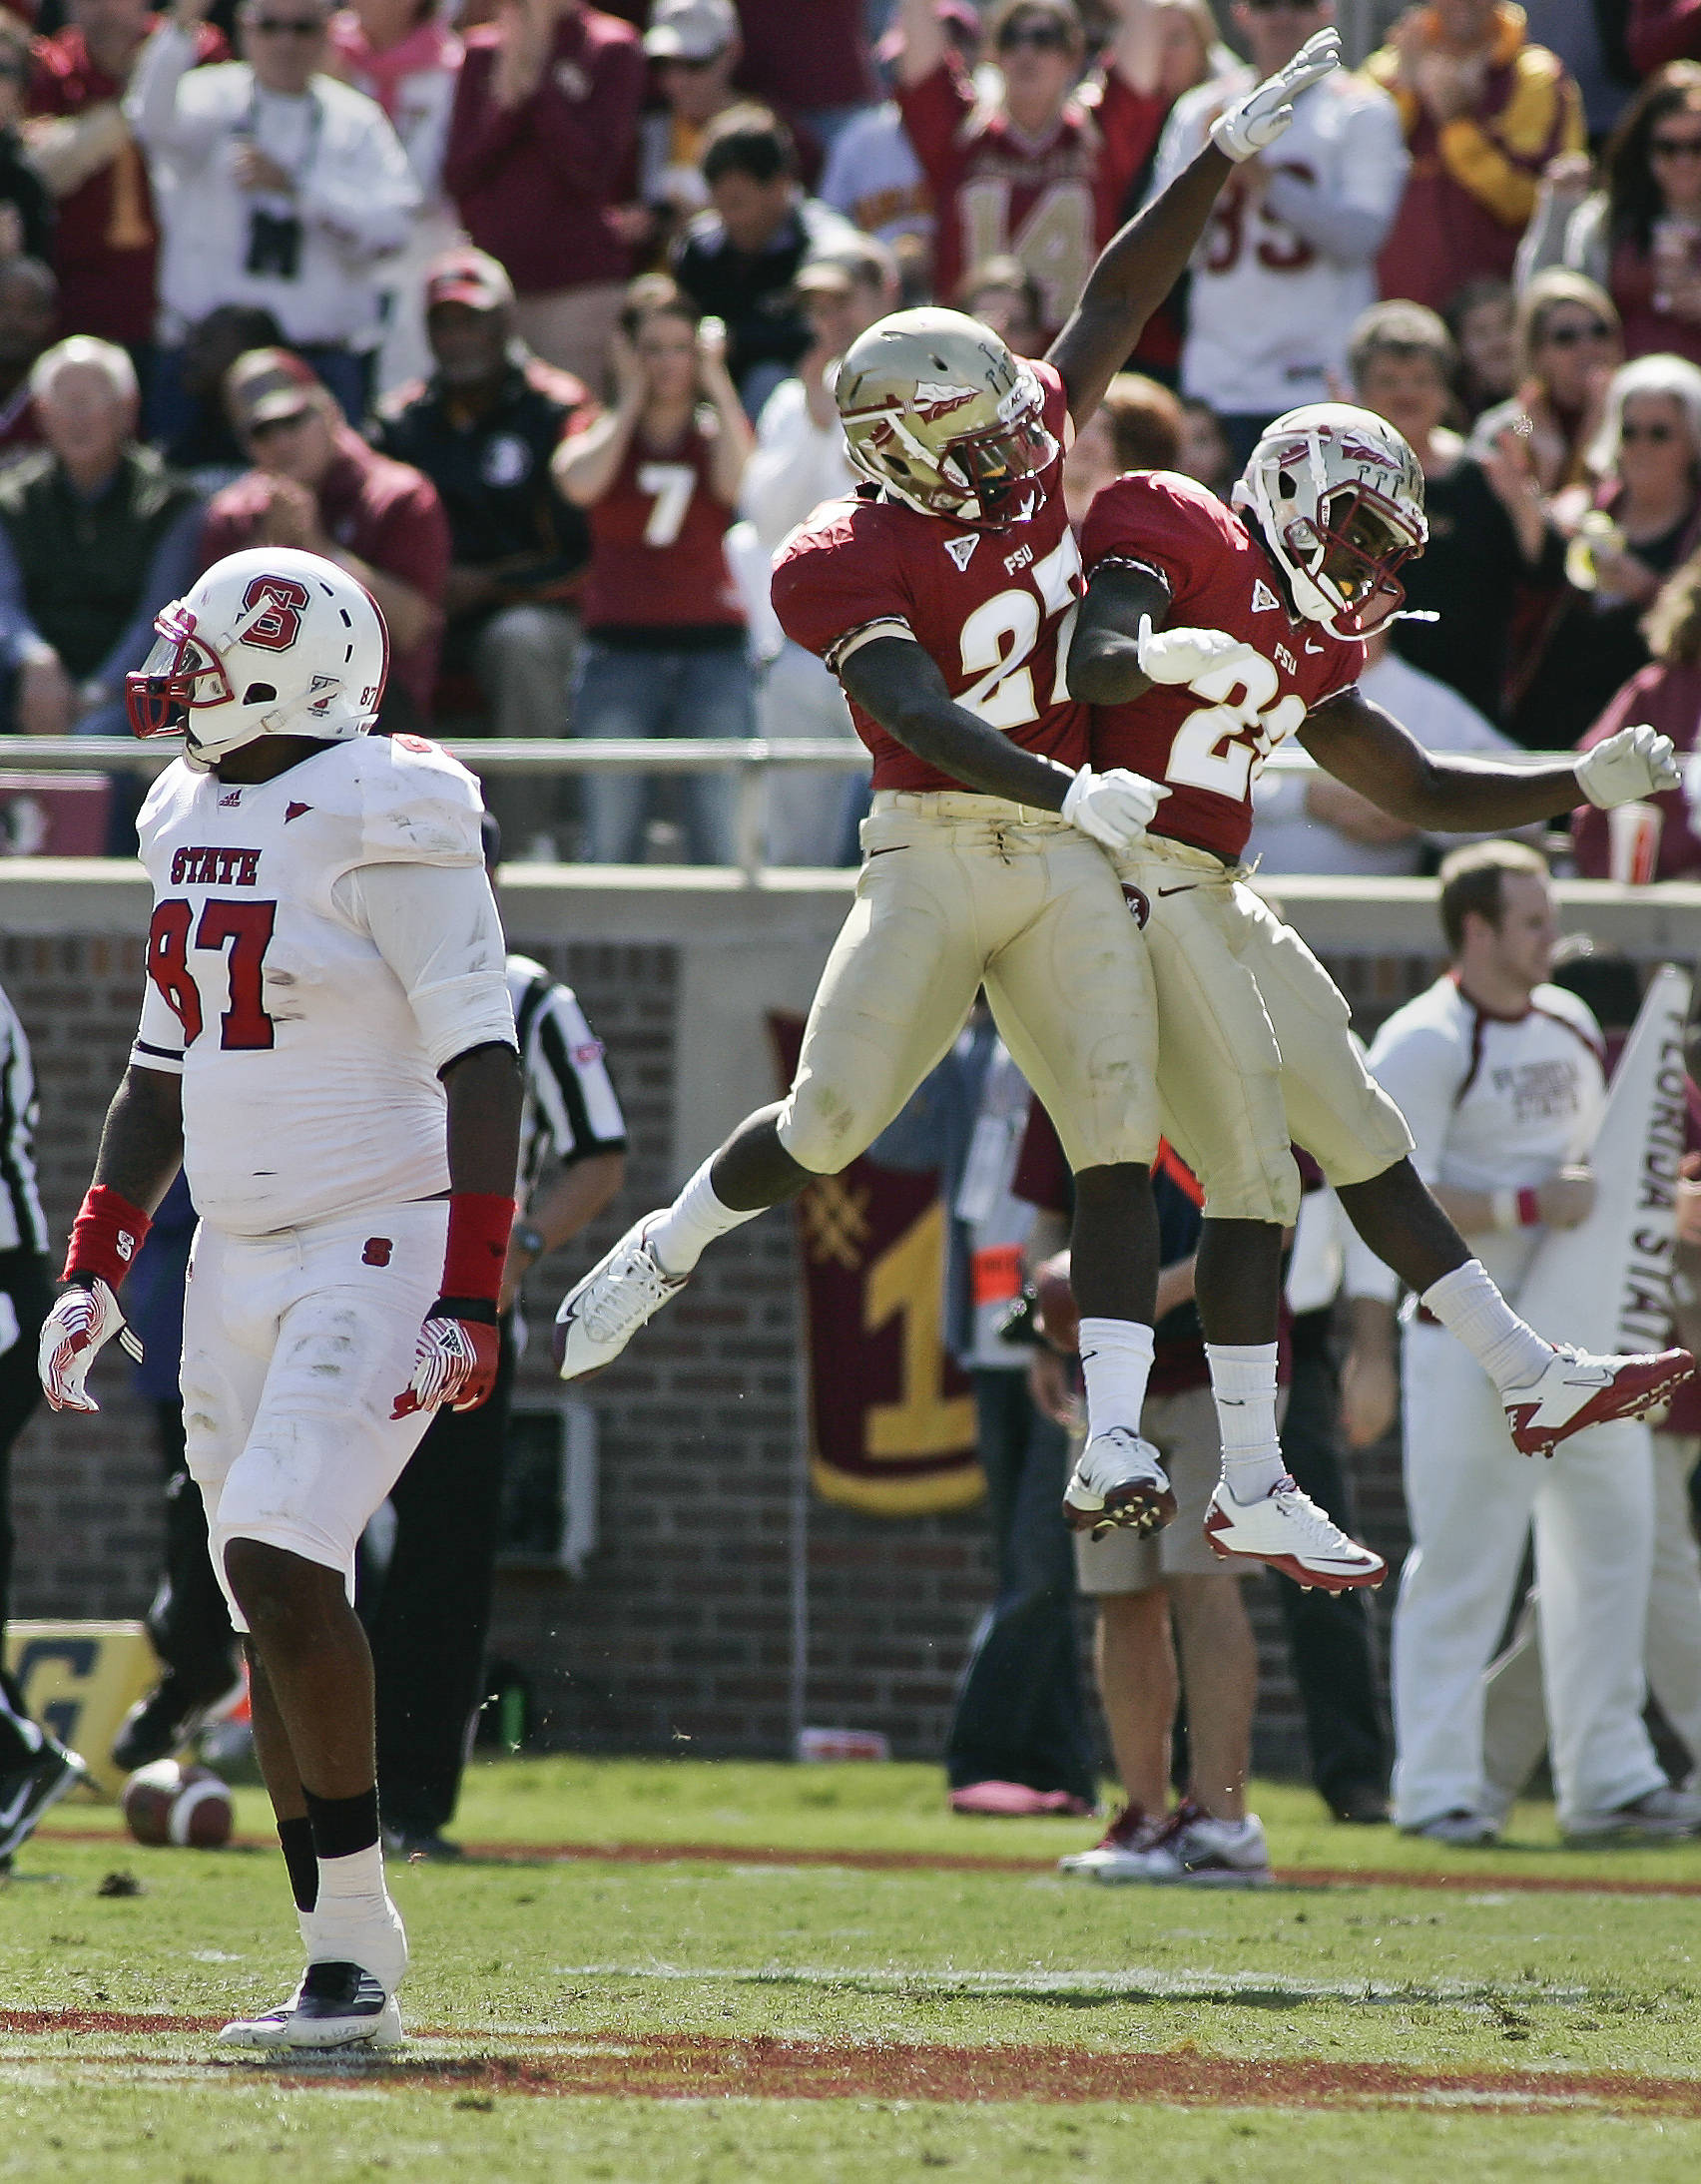 Florida State cornerback Xavier Rhodes (27) and safety Lamarcus Joyner (20) celebrate as North Carolina State tight end Mario Carter (87) walks away in the second quarter of an NCAA college football game at Doak Campbell Stadium in Tallahassee, Fla., Saturday, Oct. 29, 2011. (AP Photo/Phil Sears)